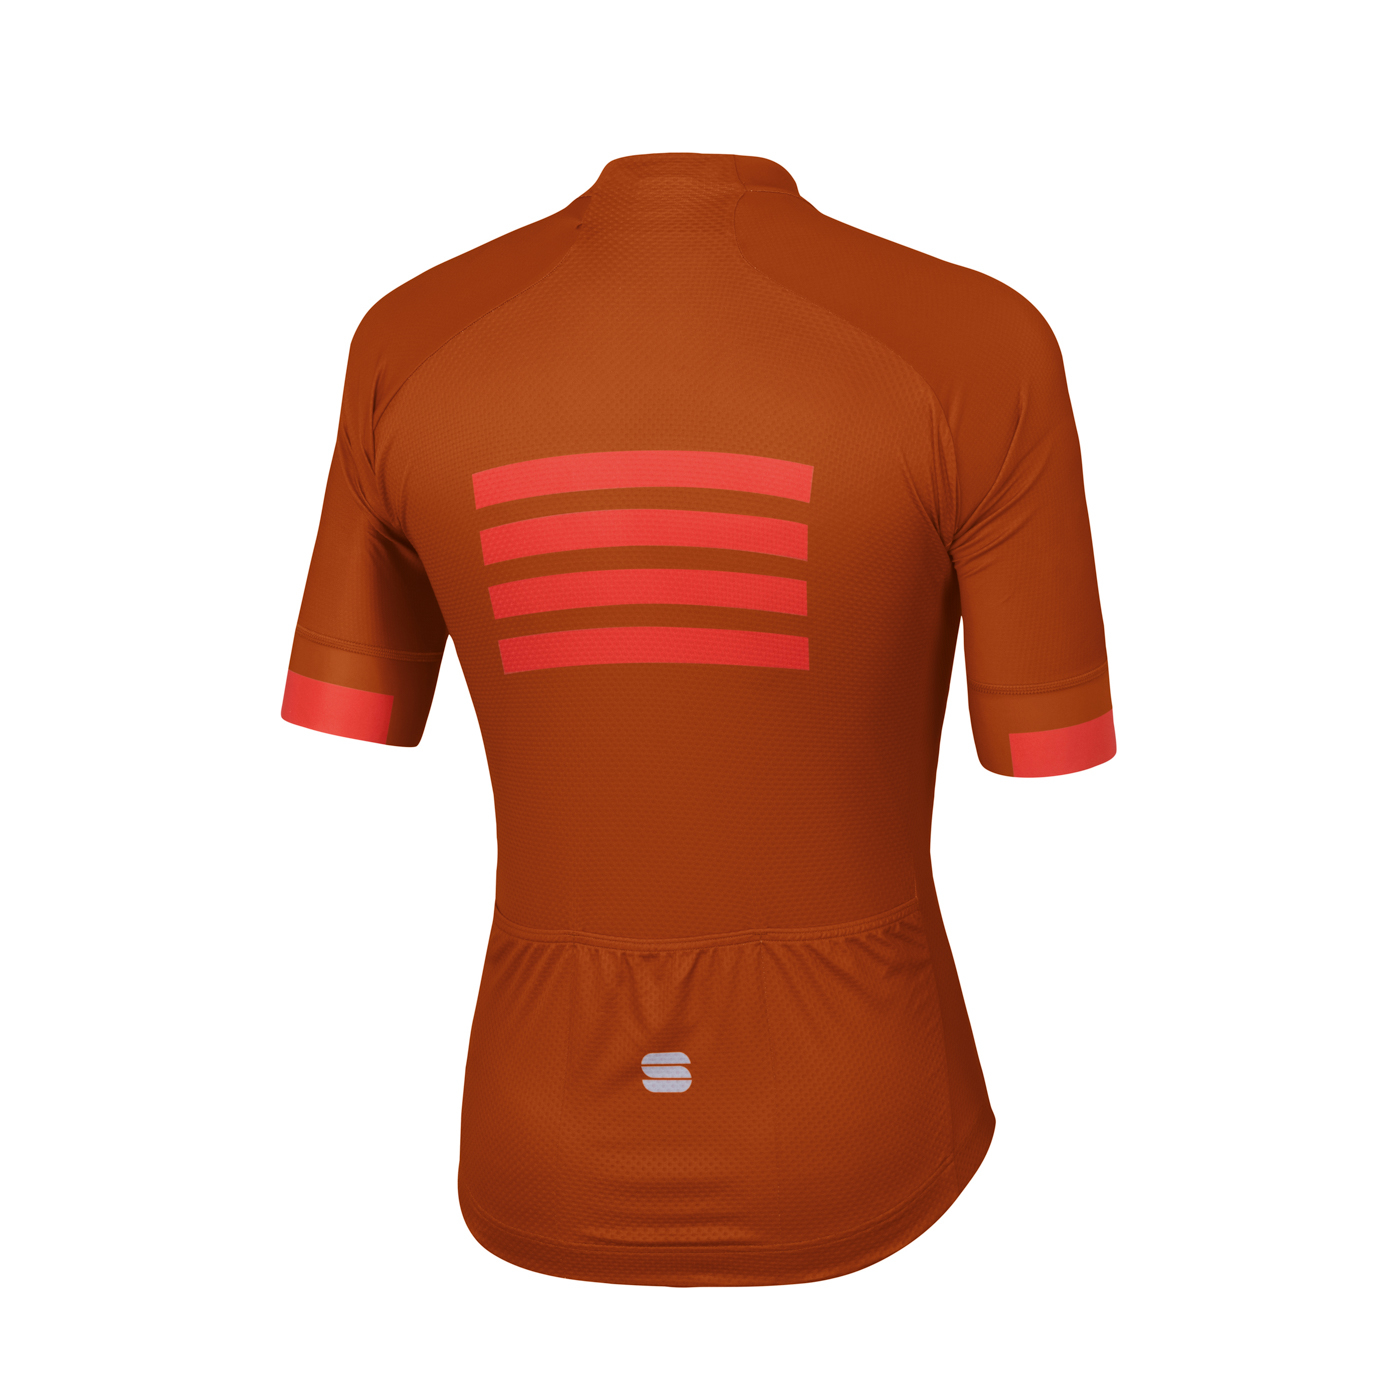 | Sportful Fietsshirt Korte mouwen voor Heren Oranje Rood - SF Wire Jersey-Sienna F Red Orange